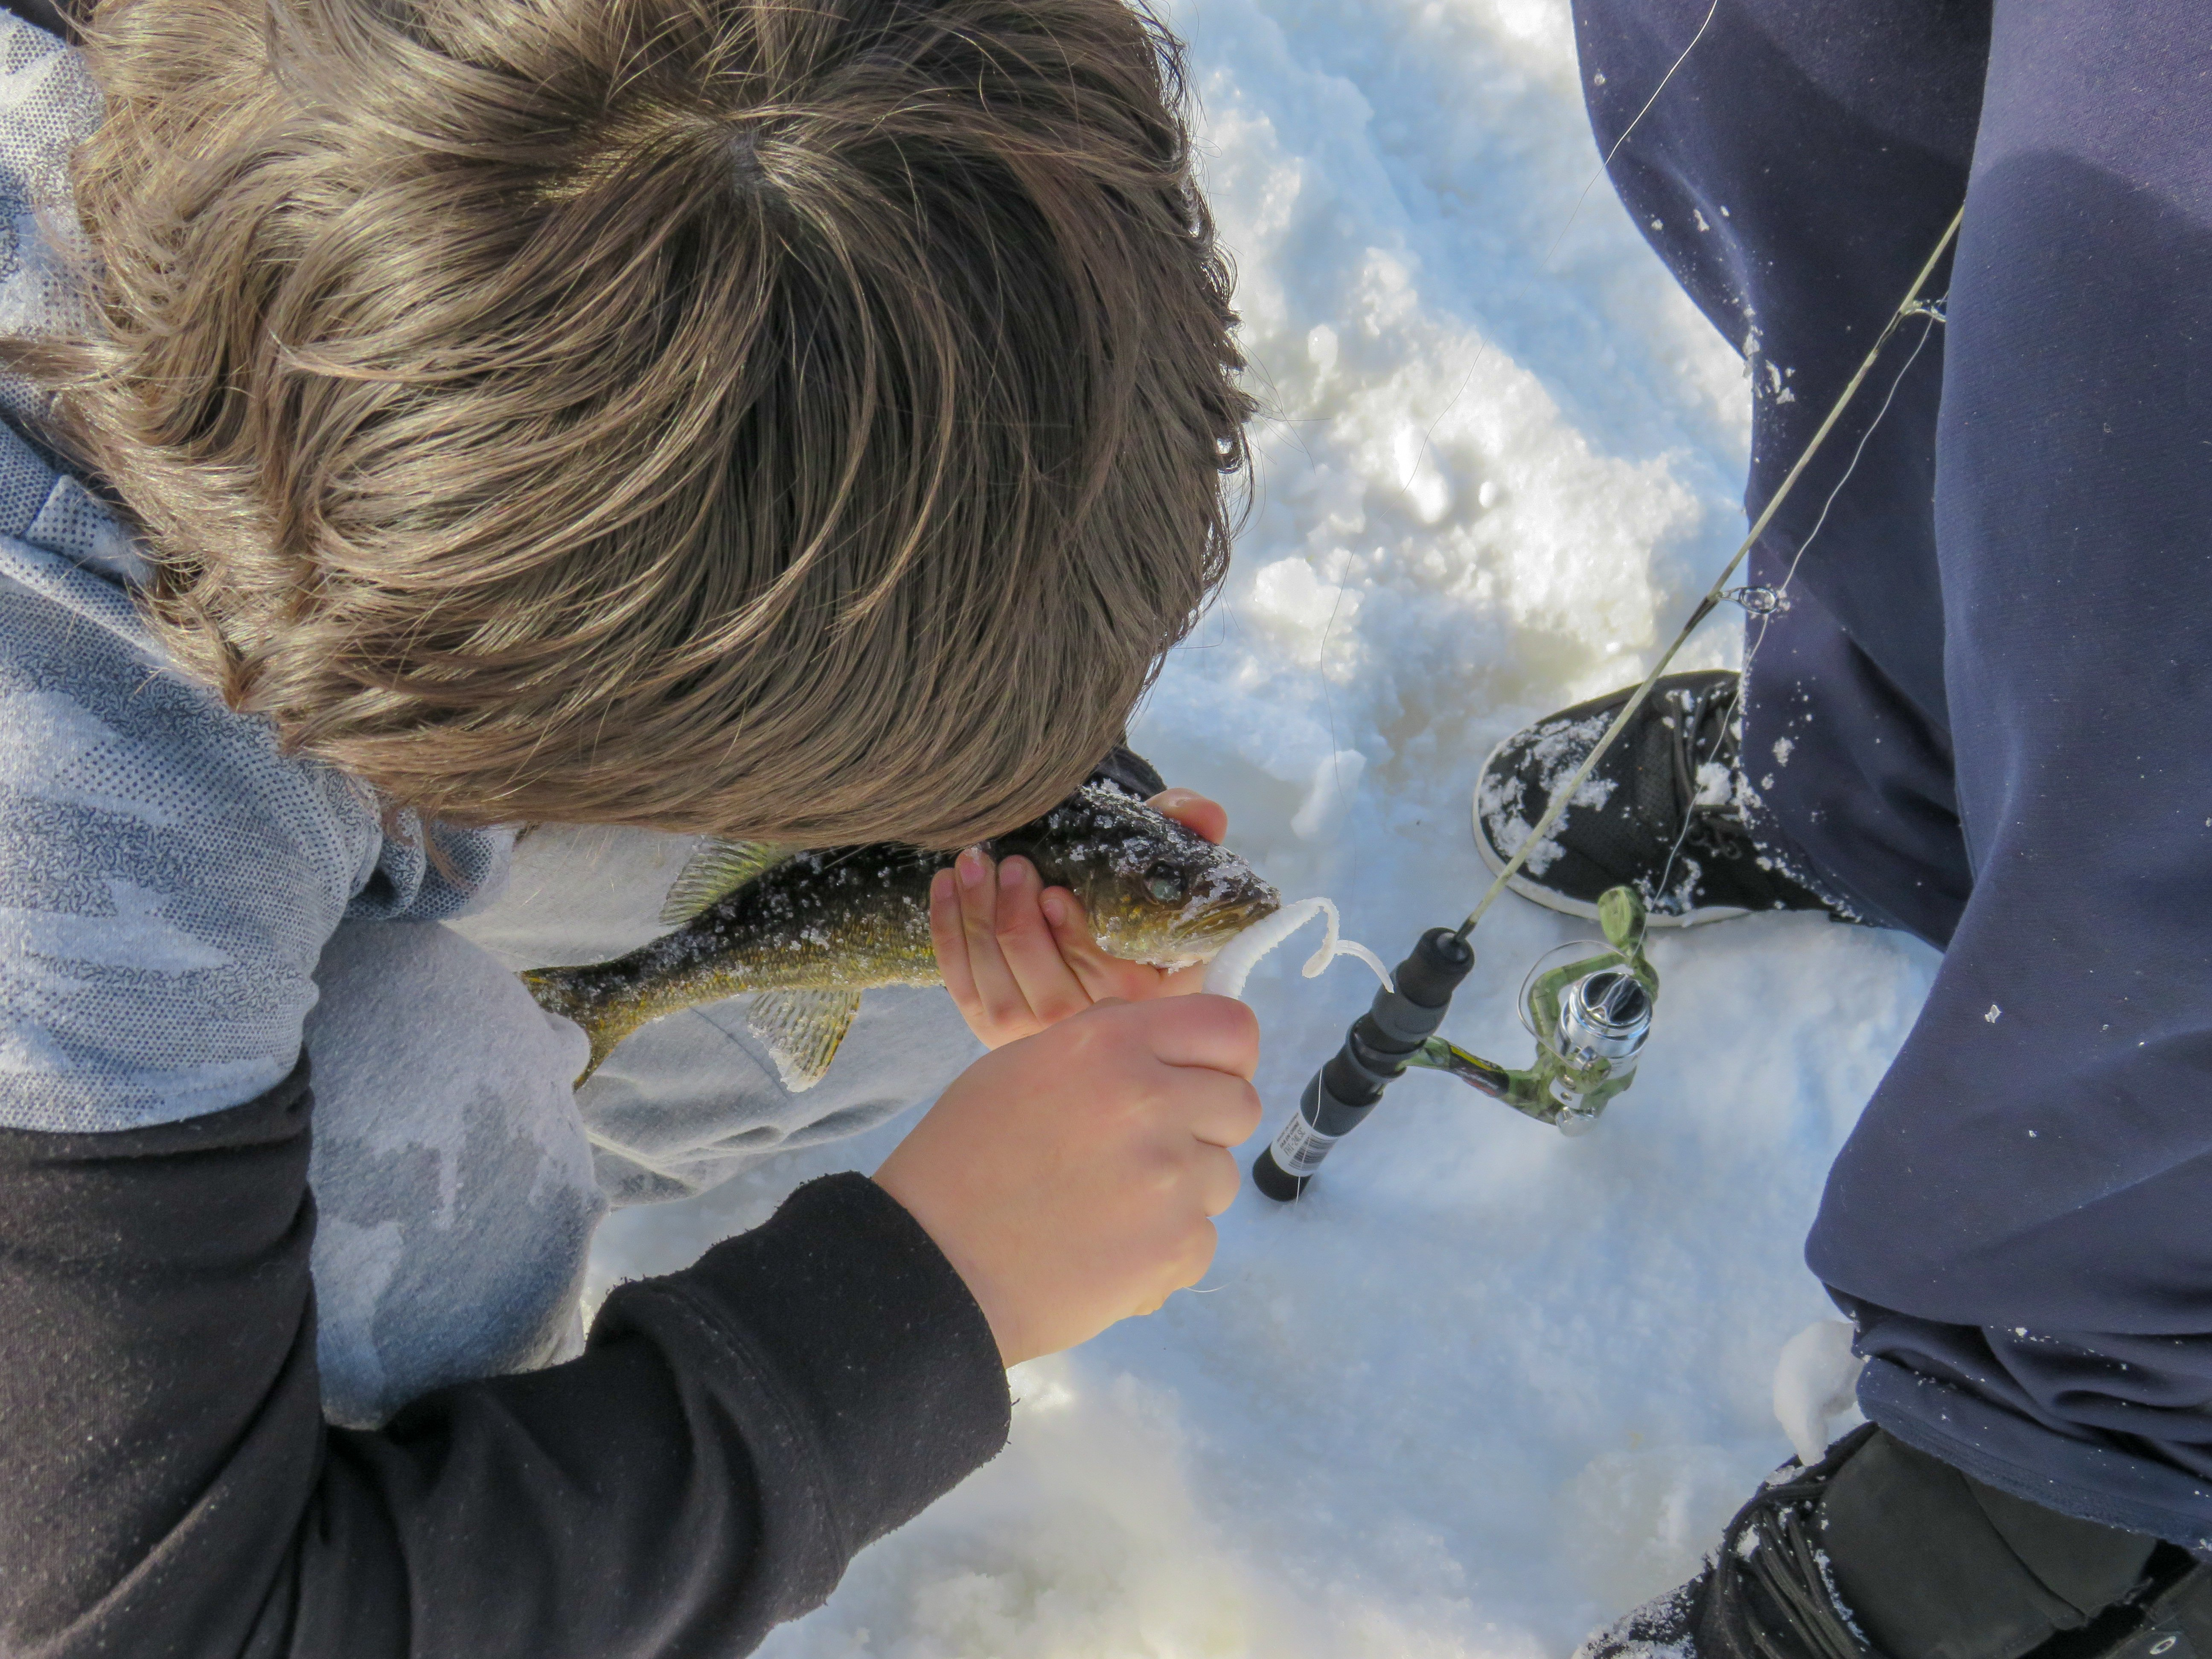 A student unhooking a fish caught ice fishing in Cat Lake First Nation